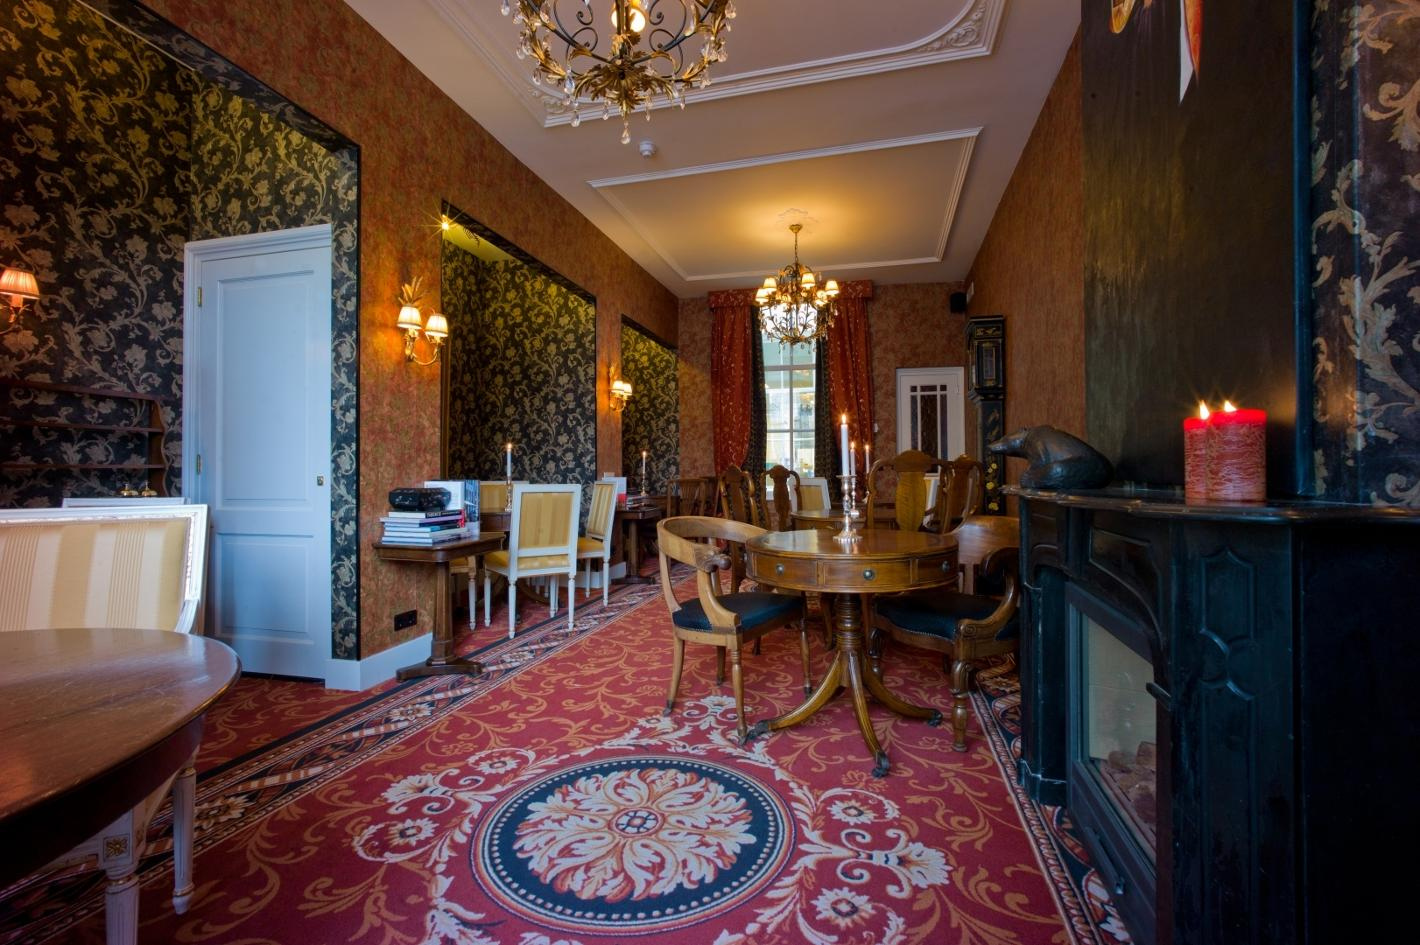 Foto Grand Boutique Hotel Huis Vermeer in Deventer, Schlafen, Schlafen - #3